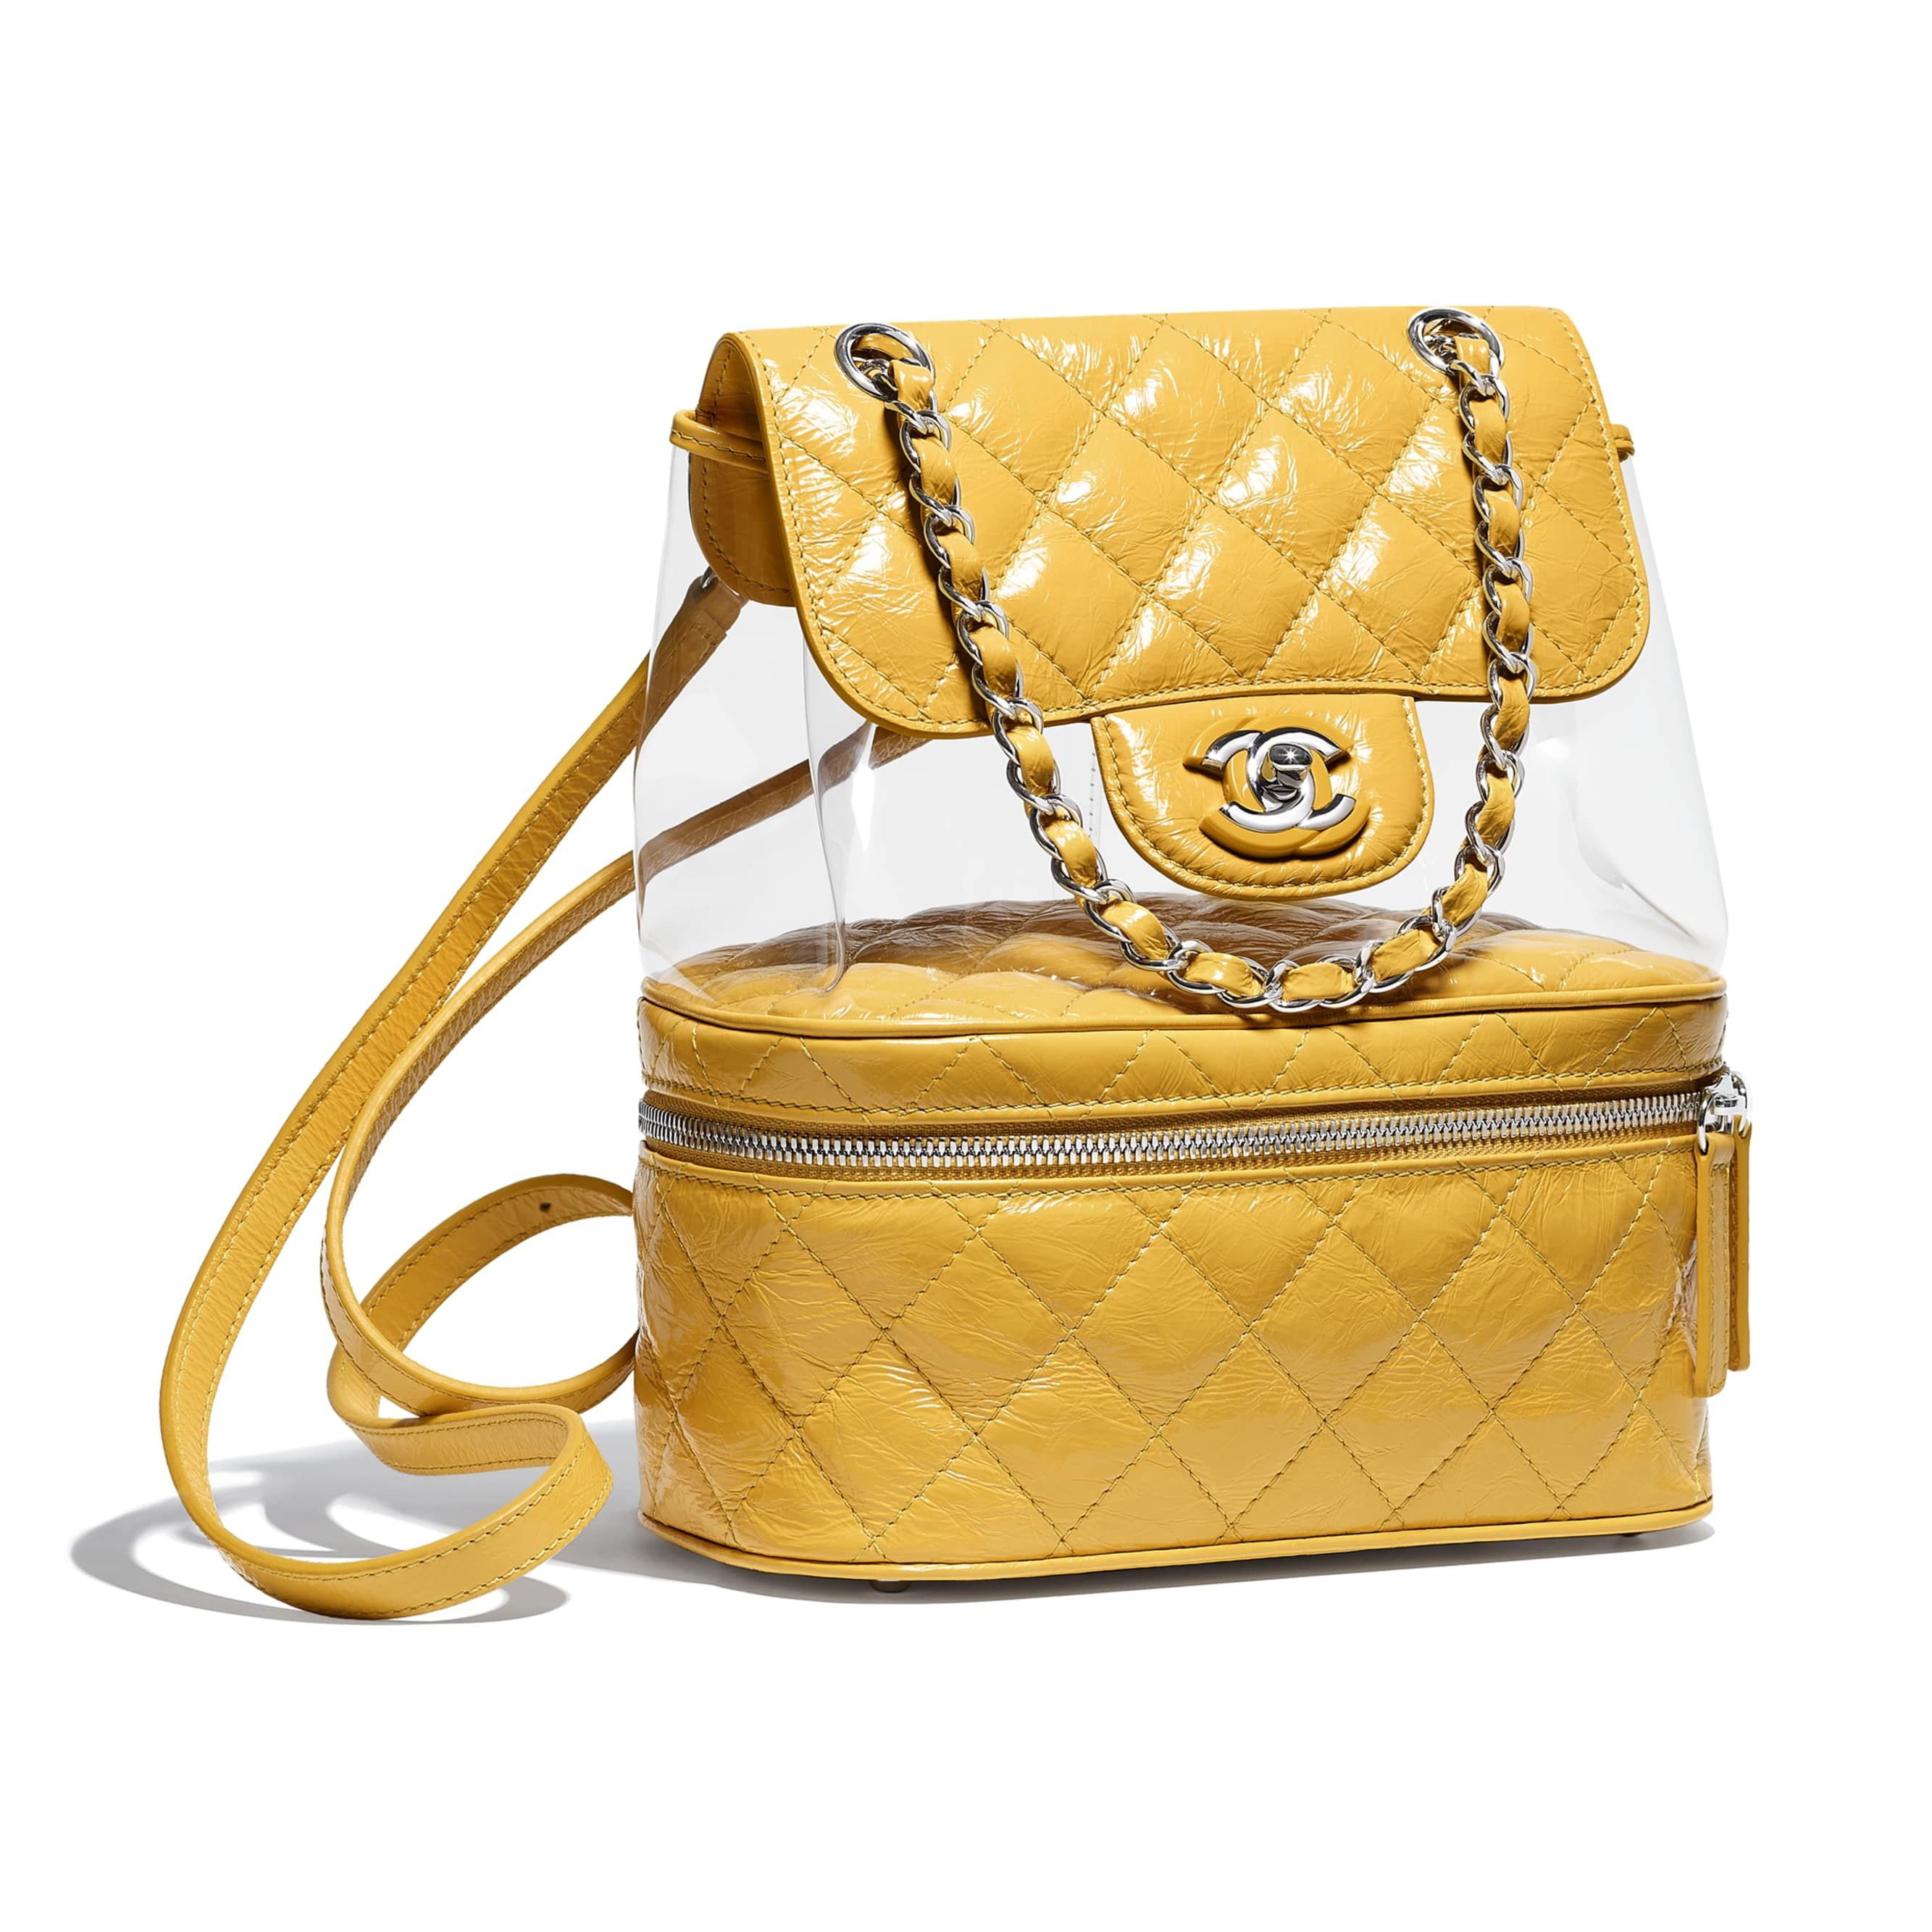 51facf7b18c0 Crumpled Calfskin, PVC, Resin & Silver-Tone Metal Yellow Backpack | CHANEL